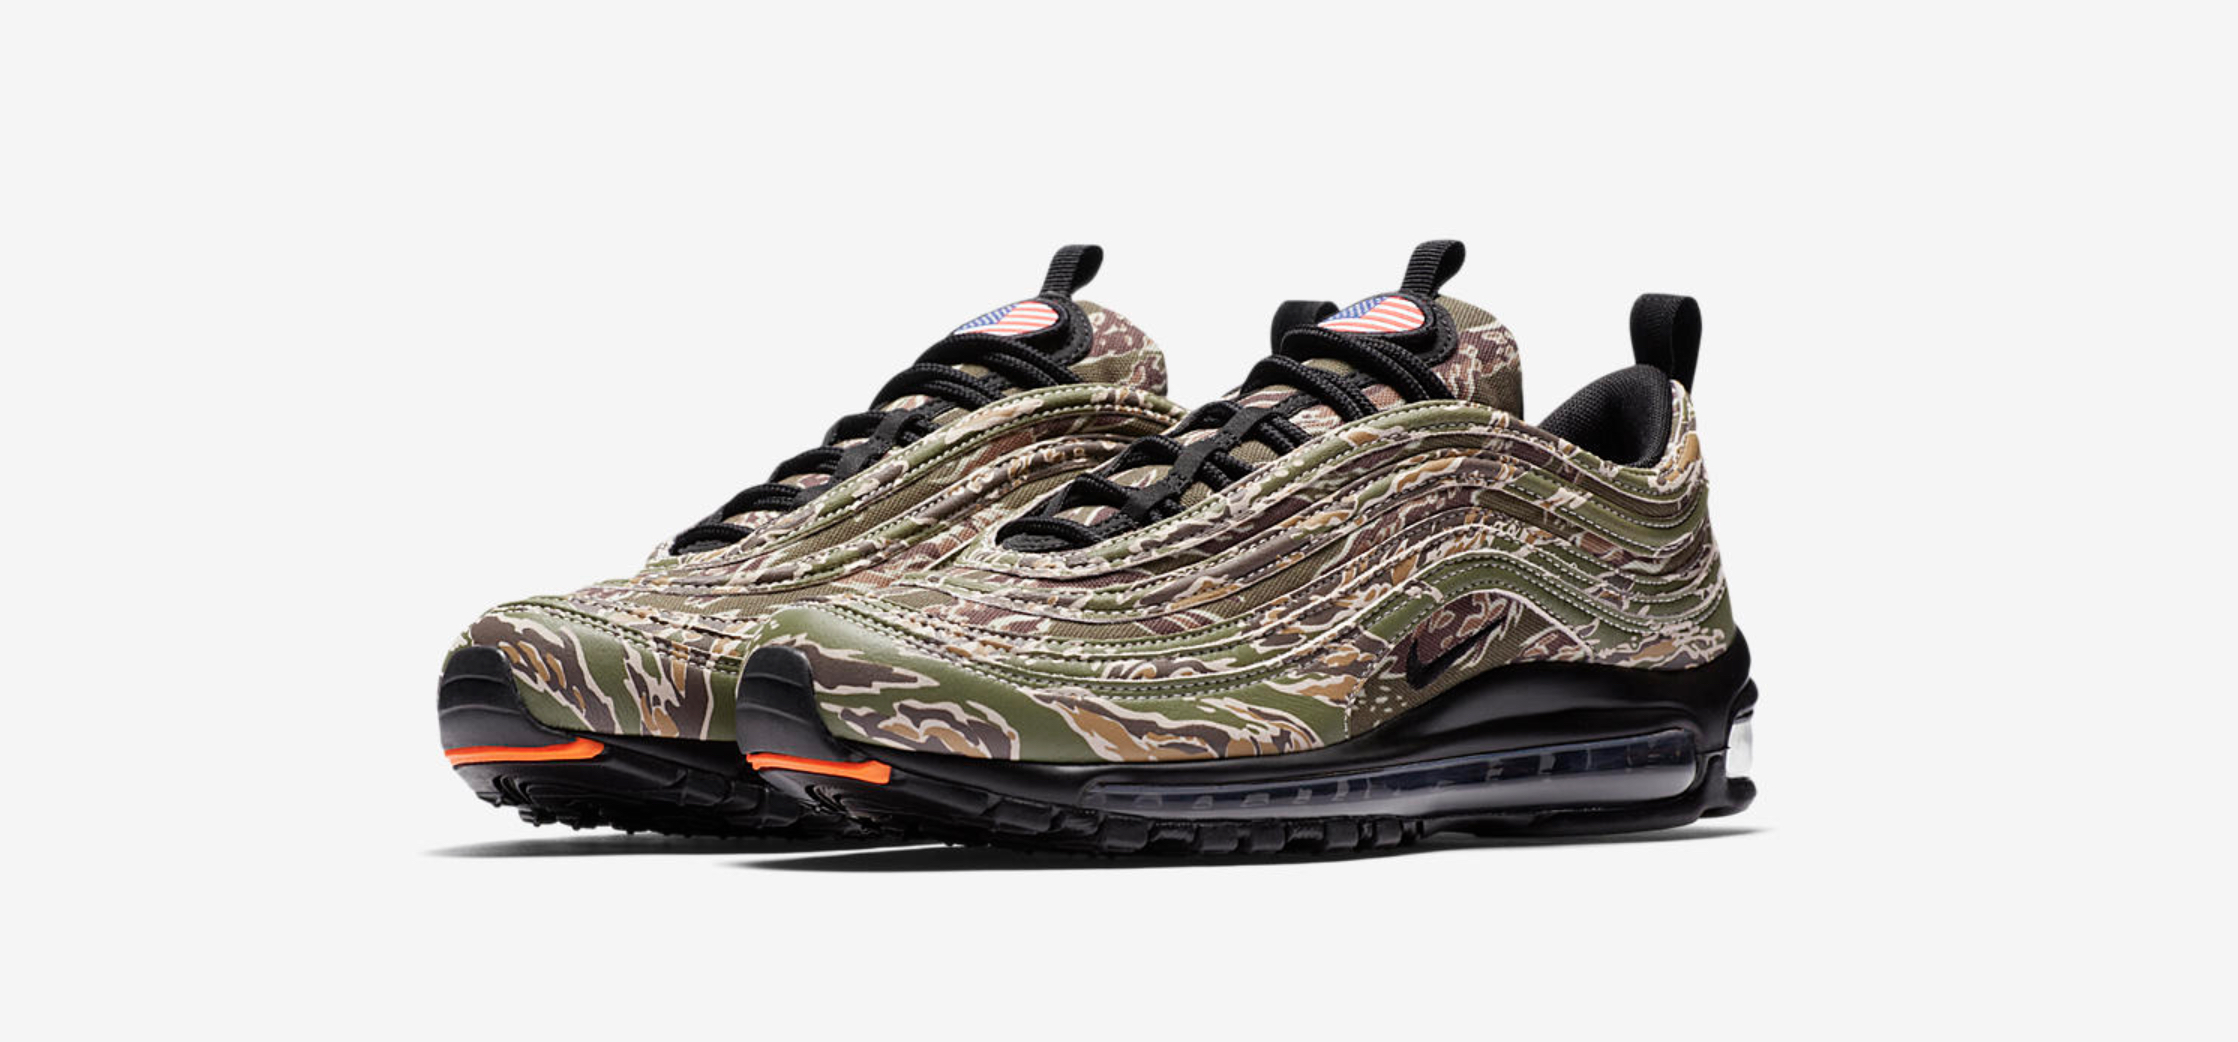 The Nike Air Max 97 Premium USA Camo Drops on the Winter